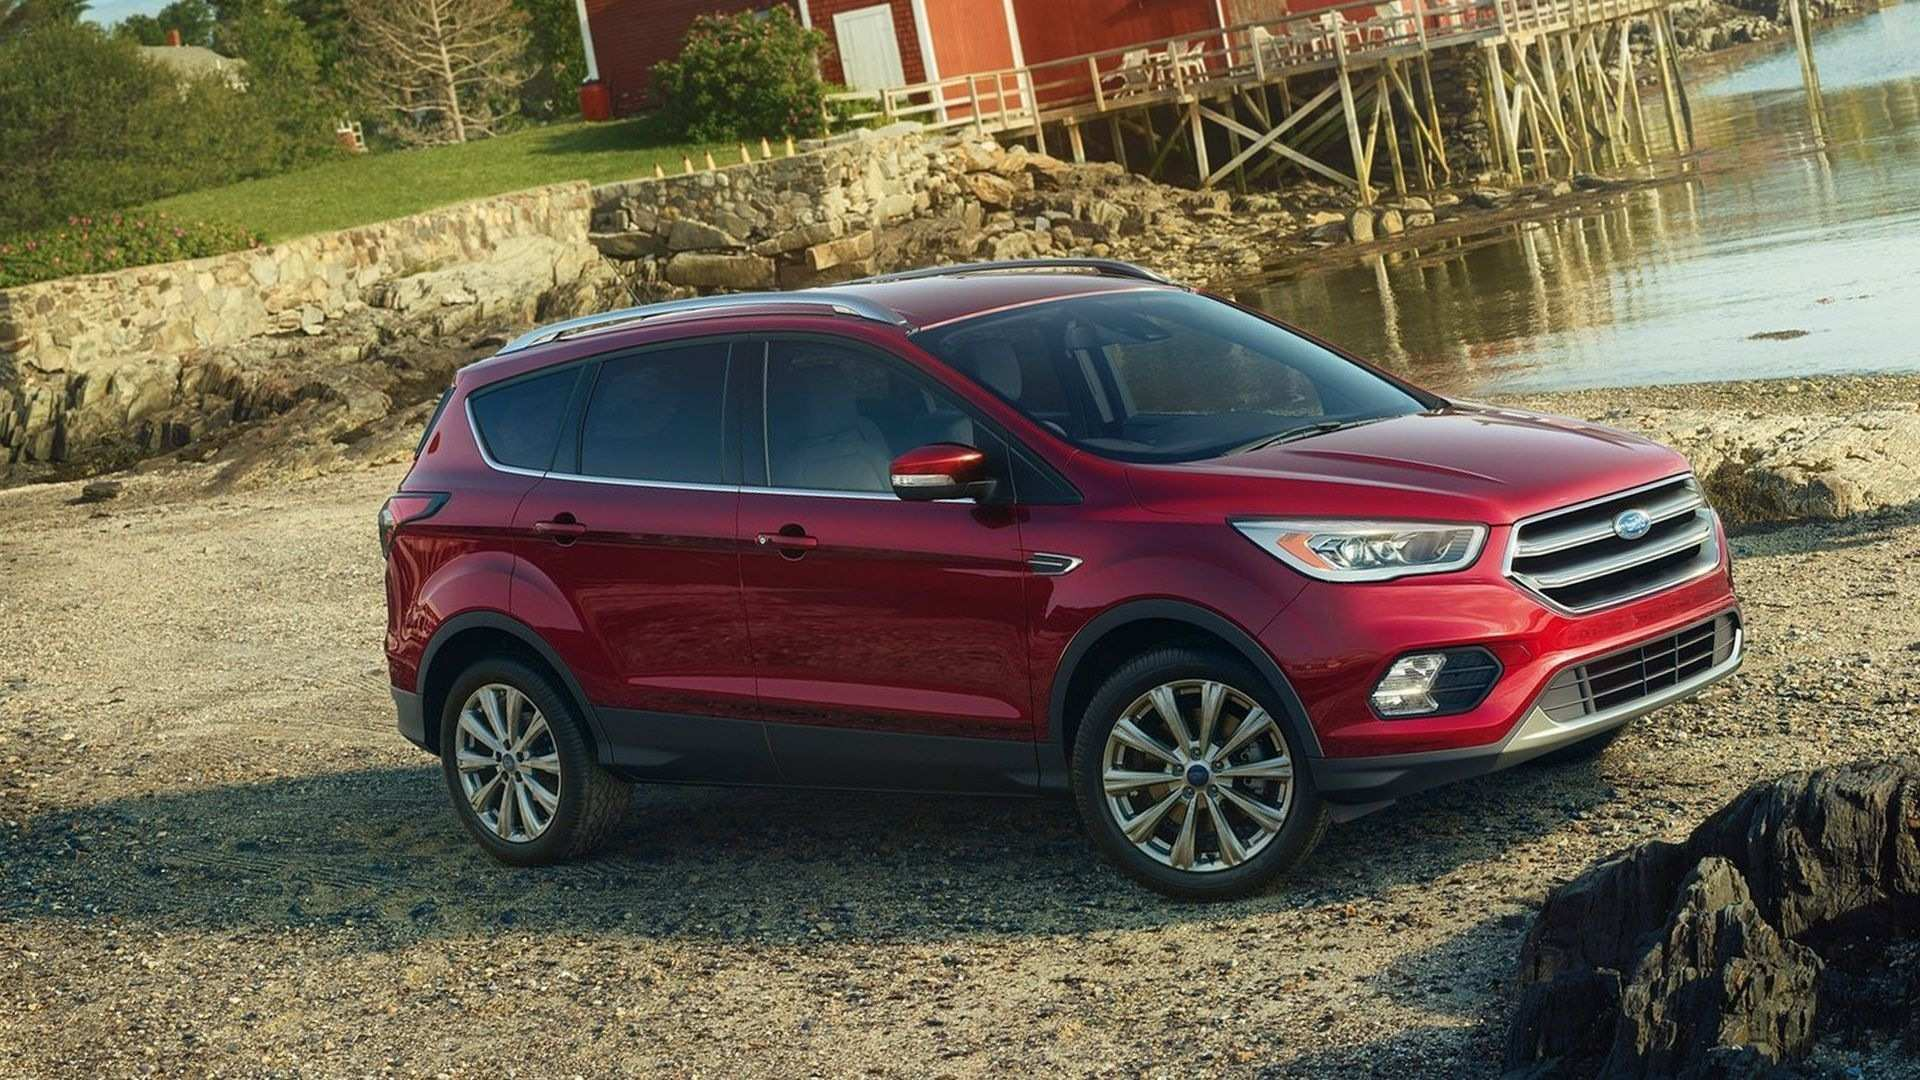 50 New Best Ford Kuga 2019 Review And Release Date Interior with Best Ford Kuga 2019 Review And Release Date